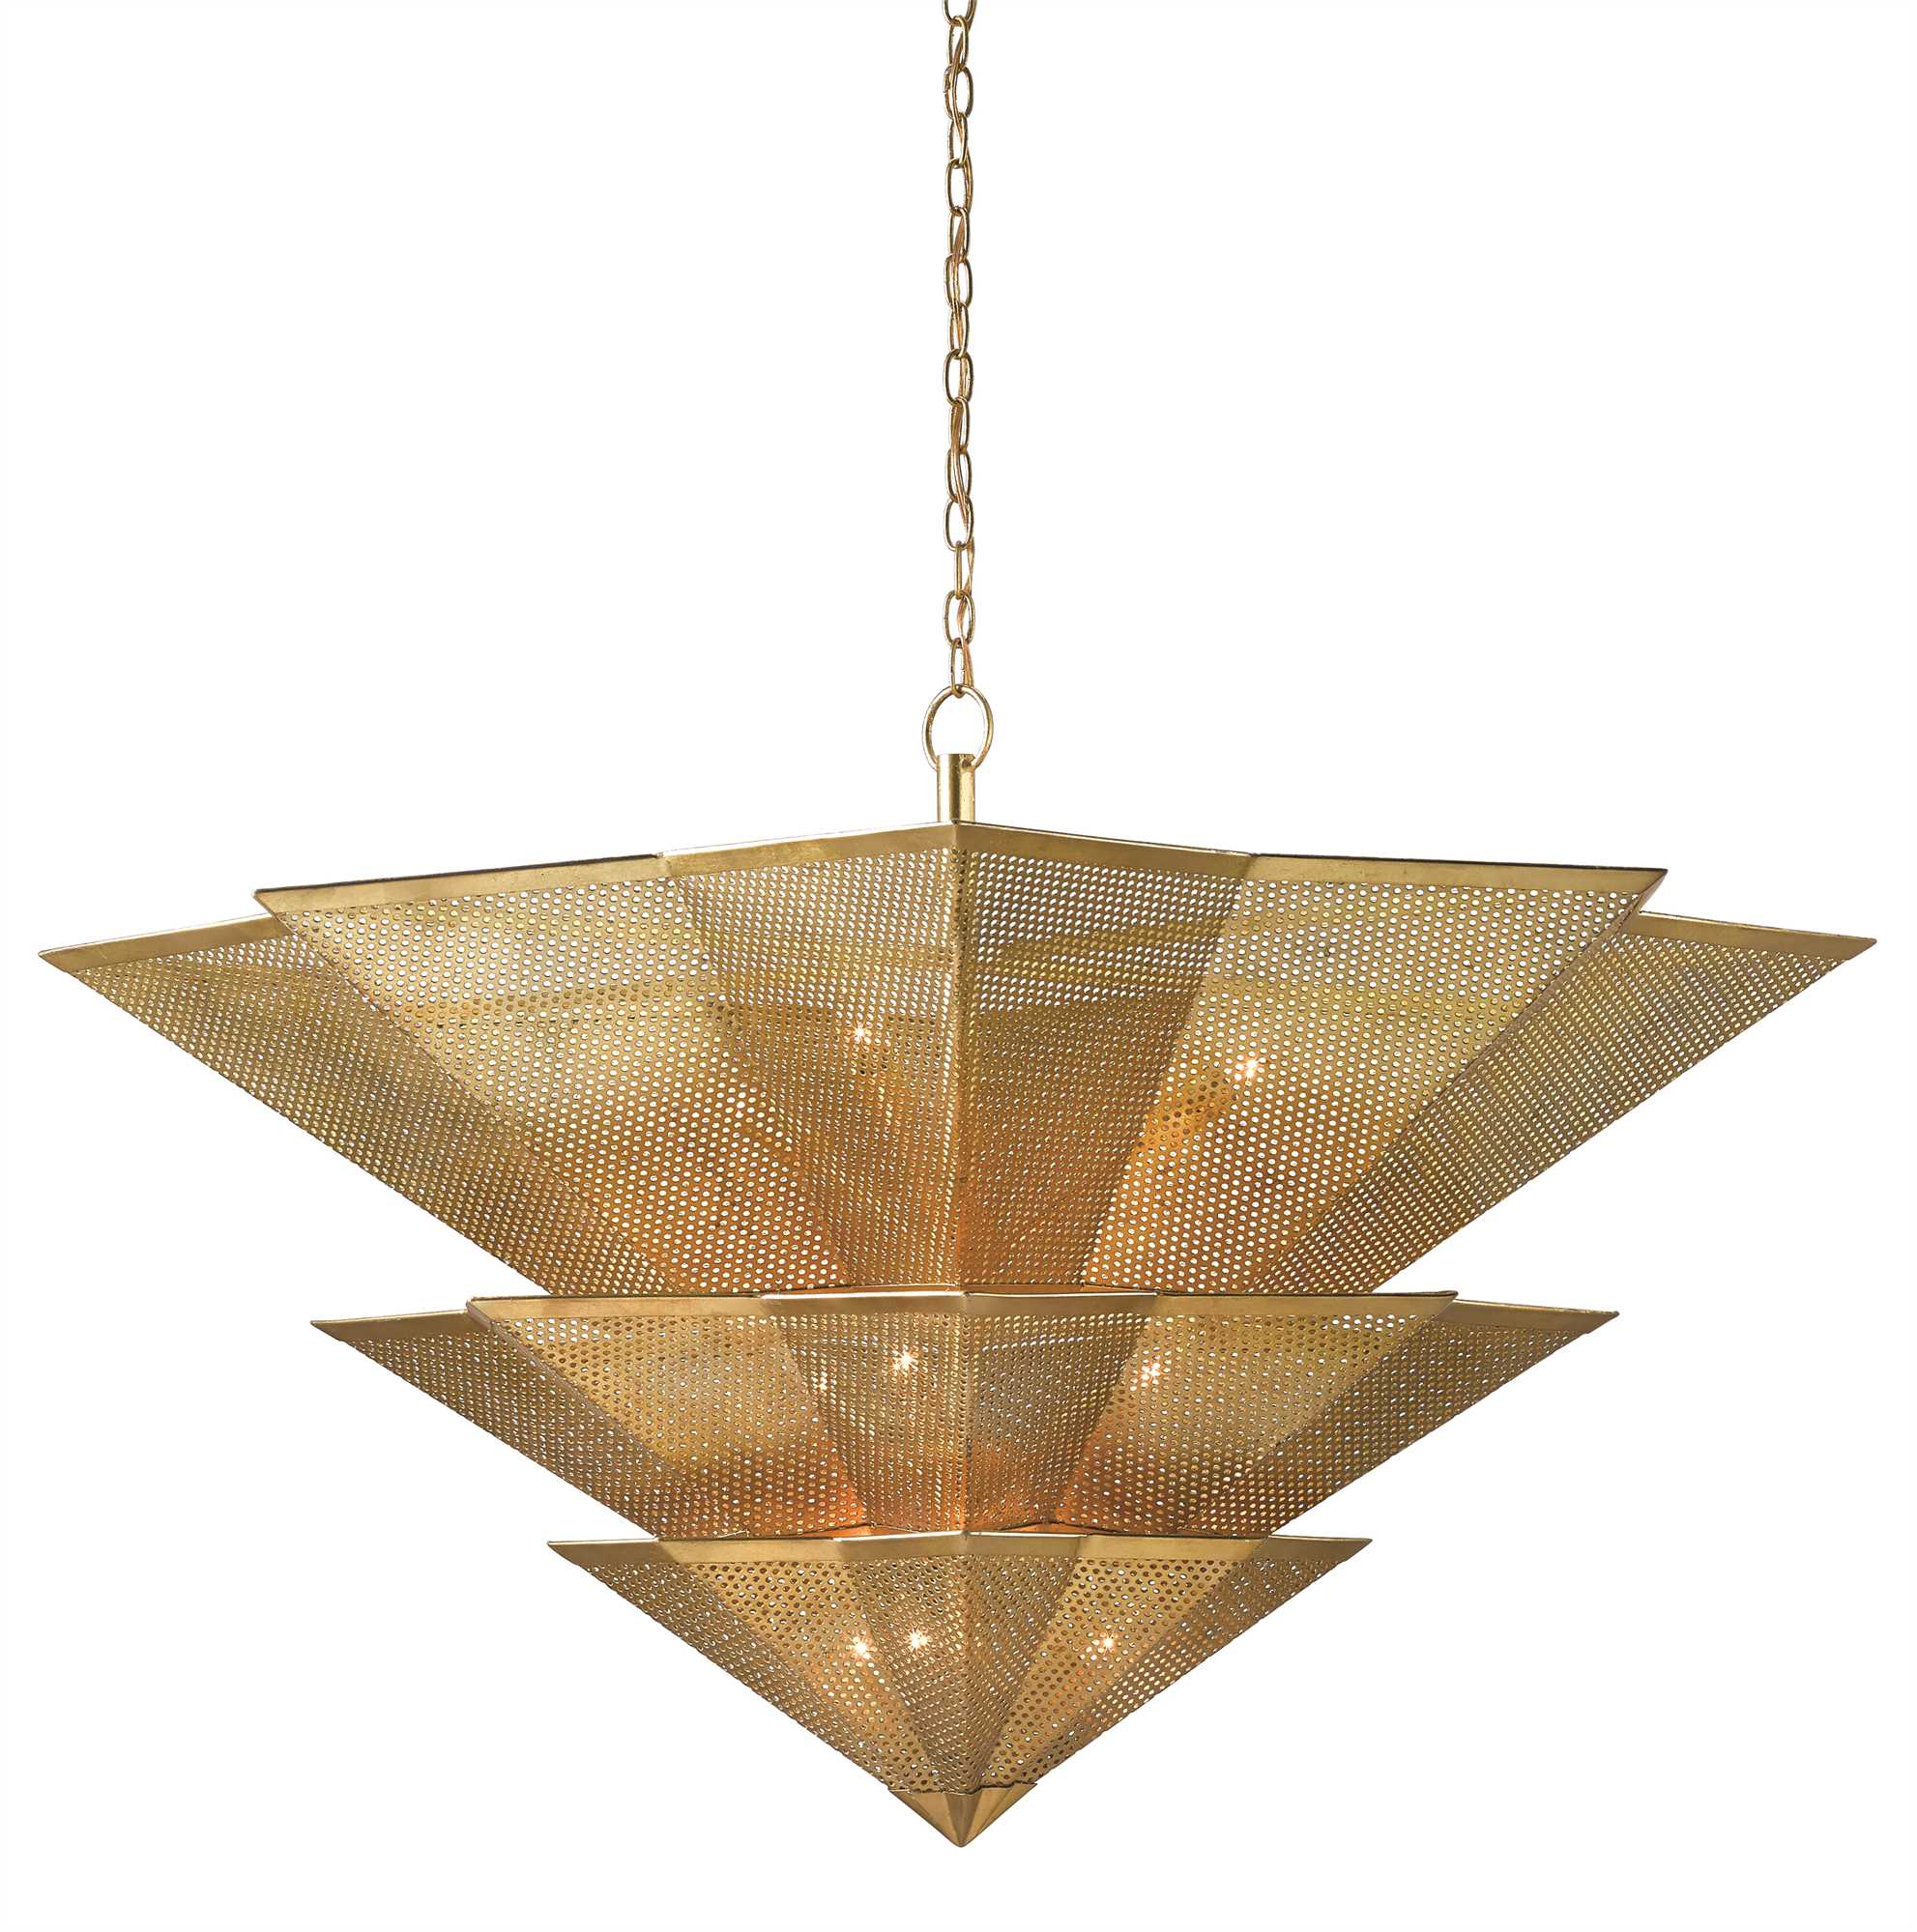 Currey and Company Hanway Chandelier 9000-0359